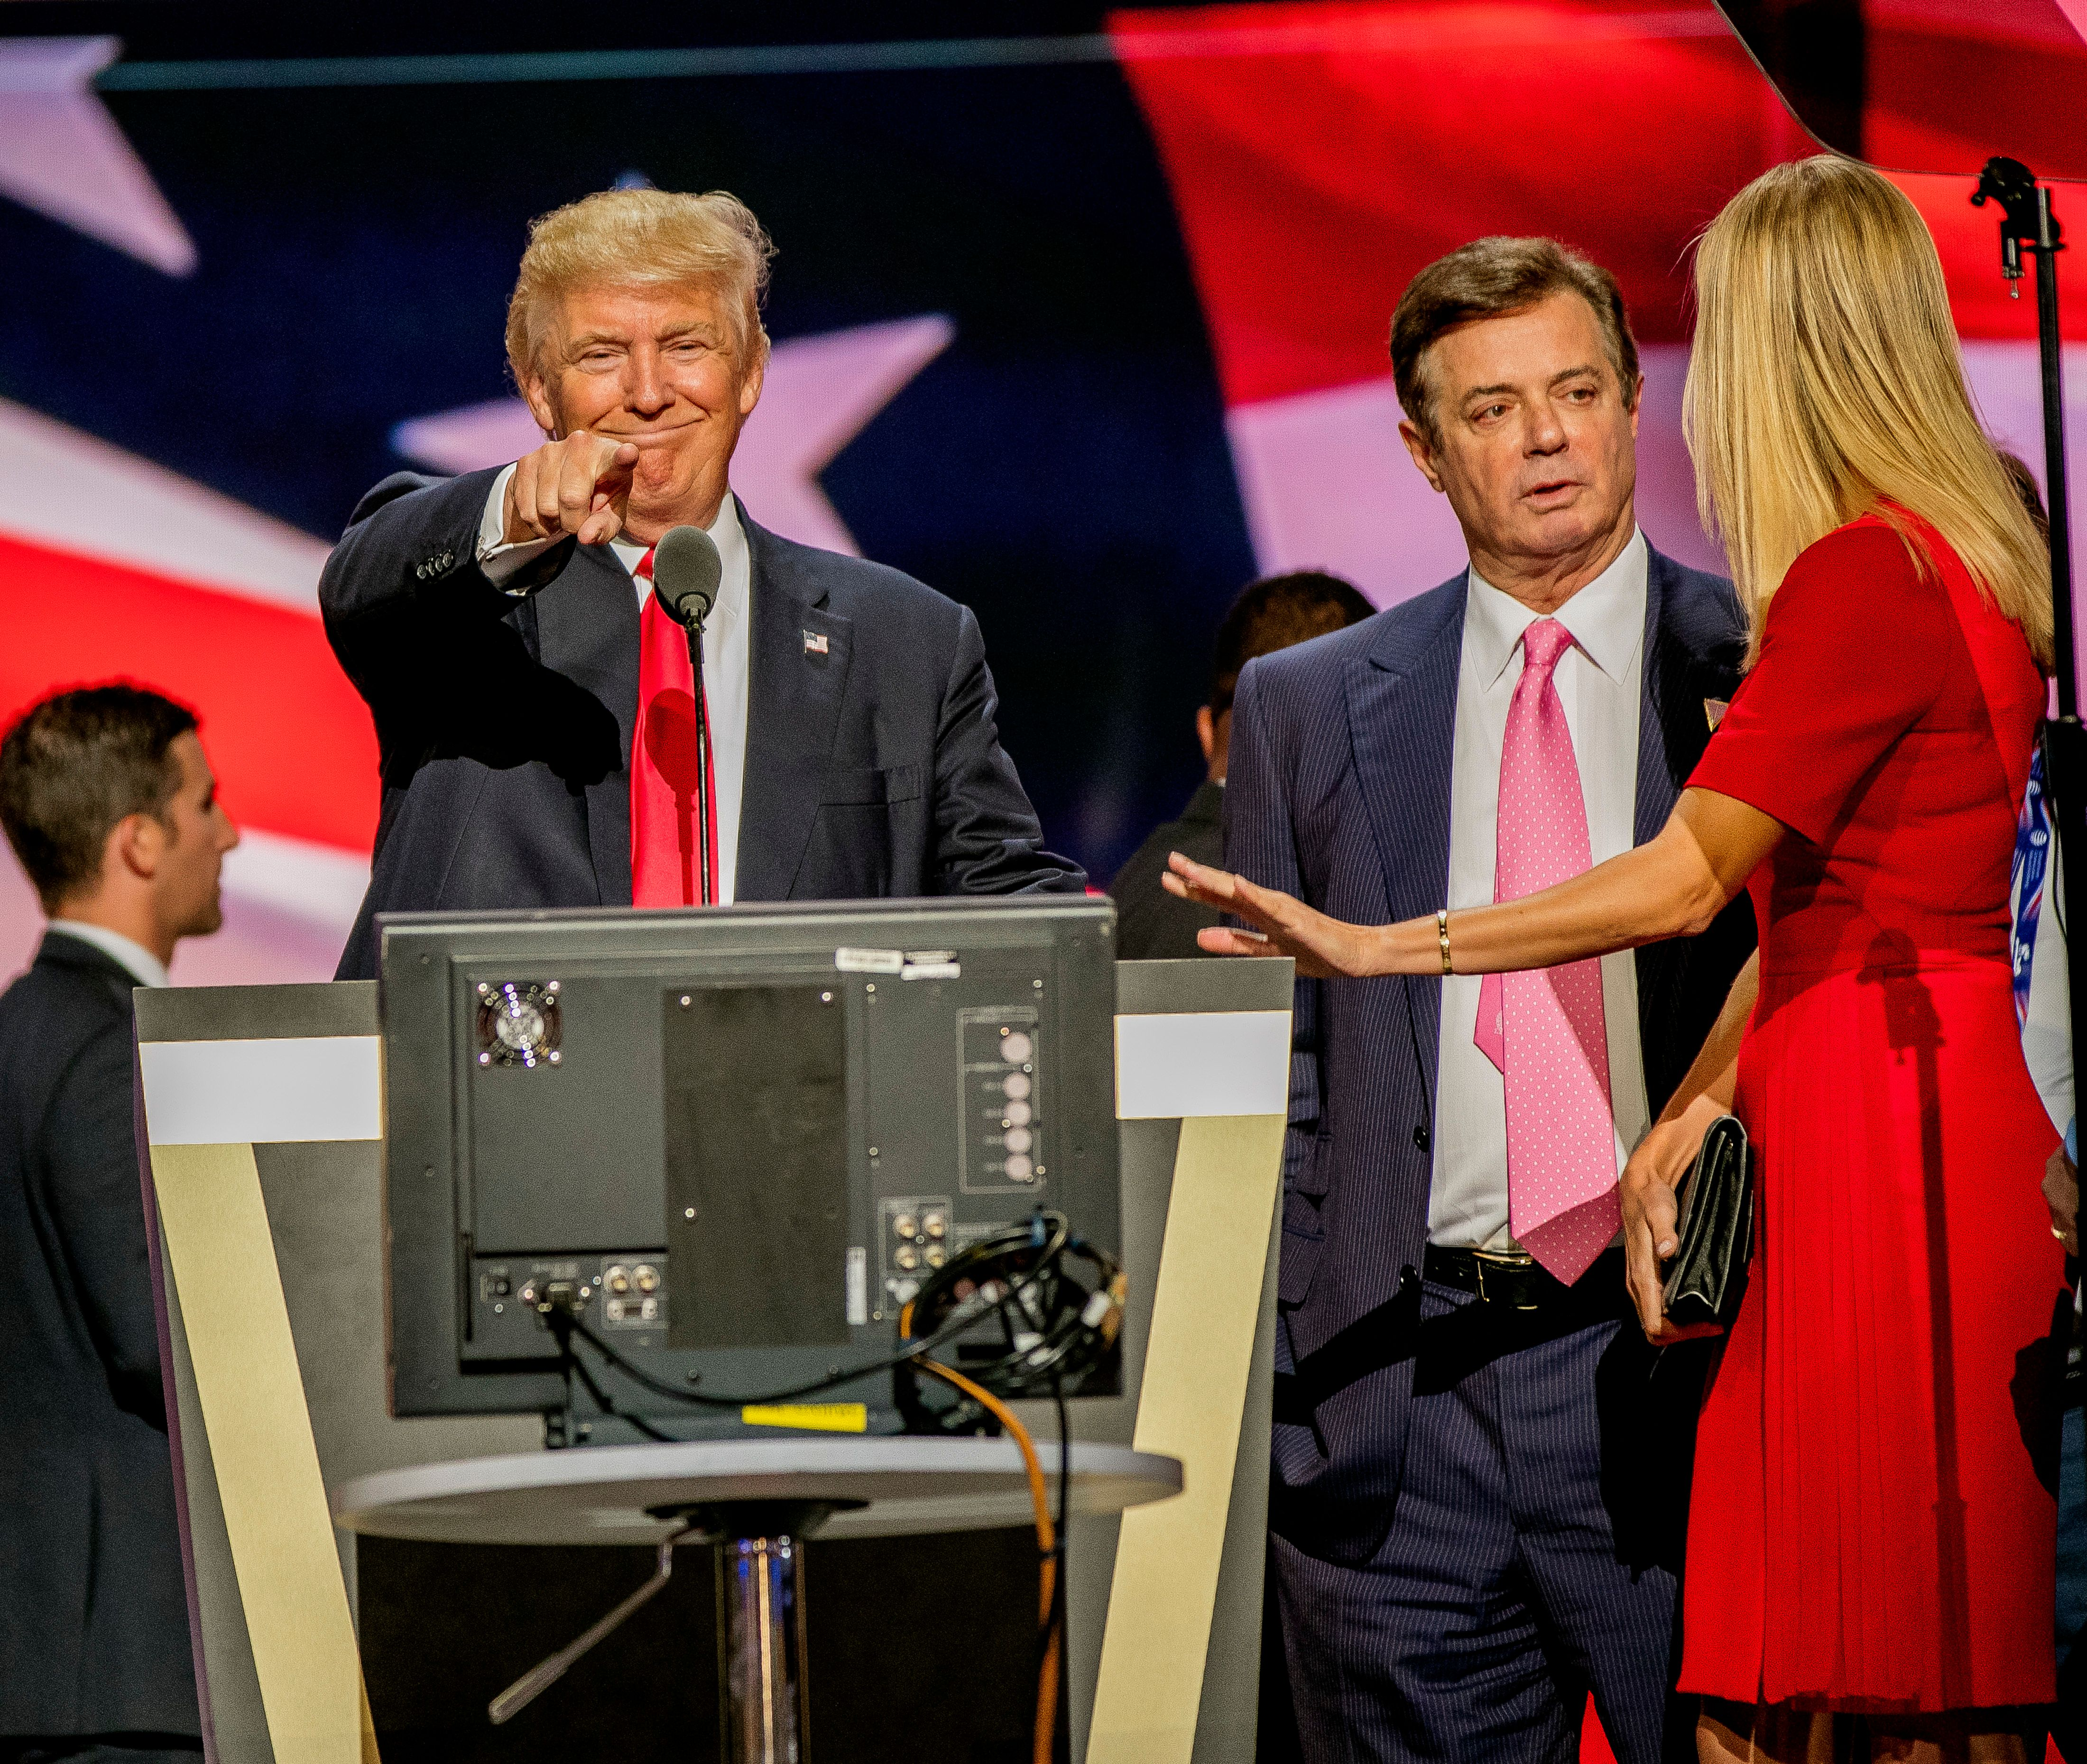 Cleveland Ohio, USA, 21th July , 2016 Donald Trump, Paul Manafort Trump campaign manager and Ivanka Trump during the sound checks on stage in the Quicken Arena for the Republican National Convention Credit: Mark Reinstein/MediaPunch /IPX